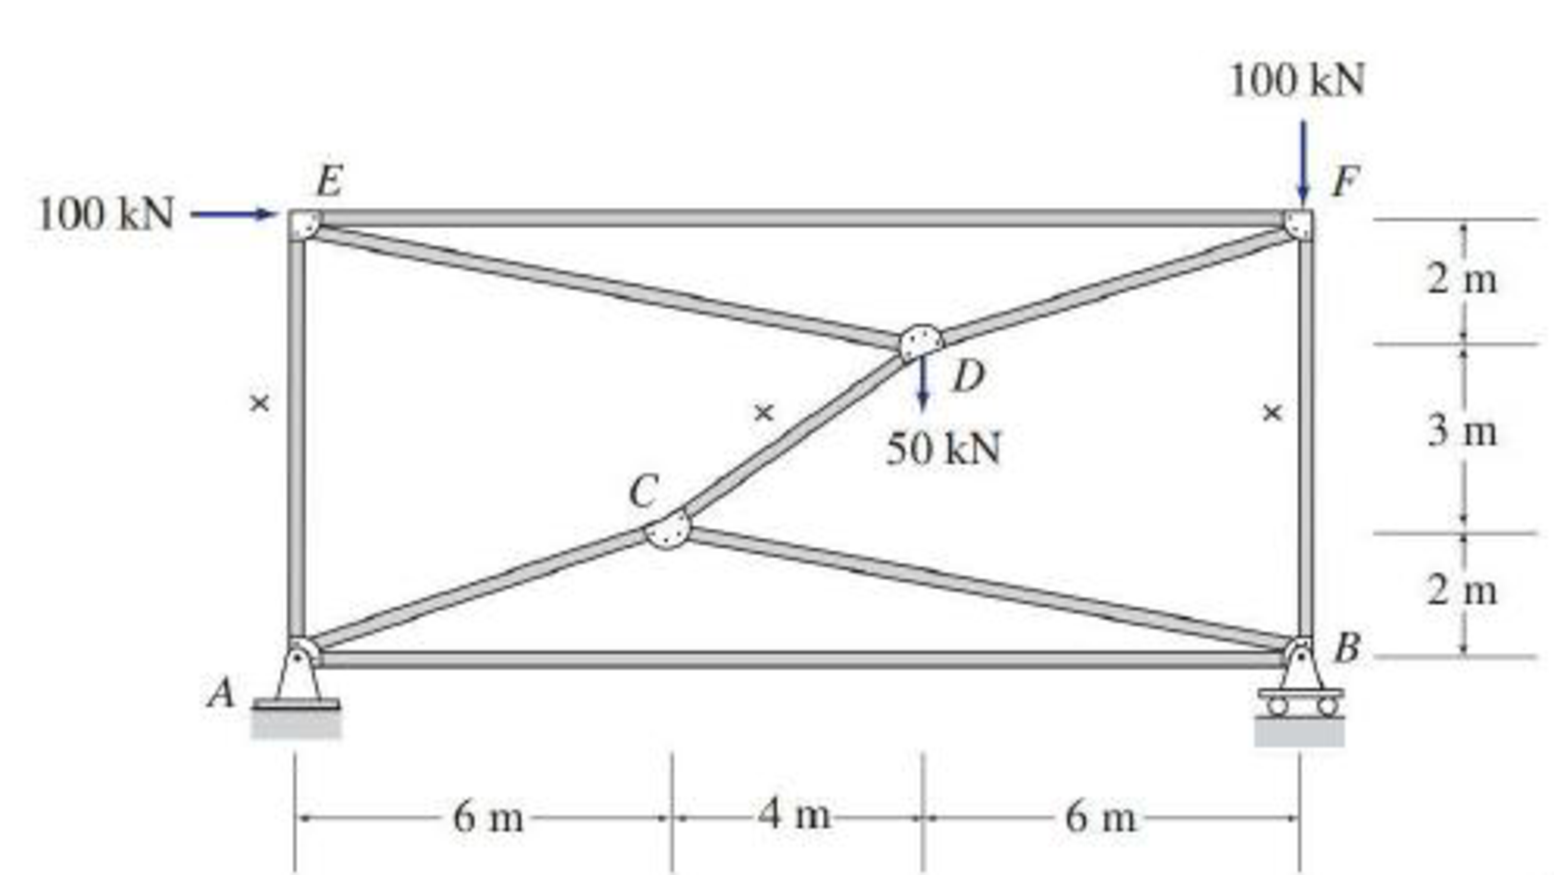 Chapter 4, Problem 44P, Determine the forces in the members identified by x of the truss shown by the method of sections.